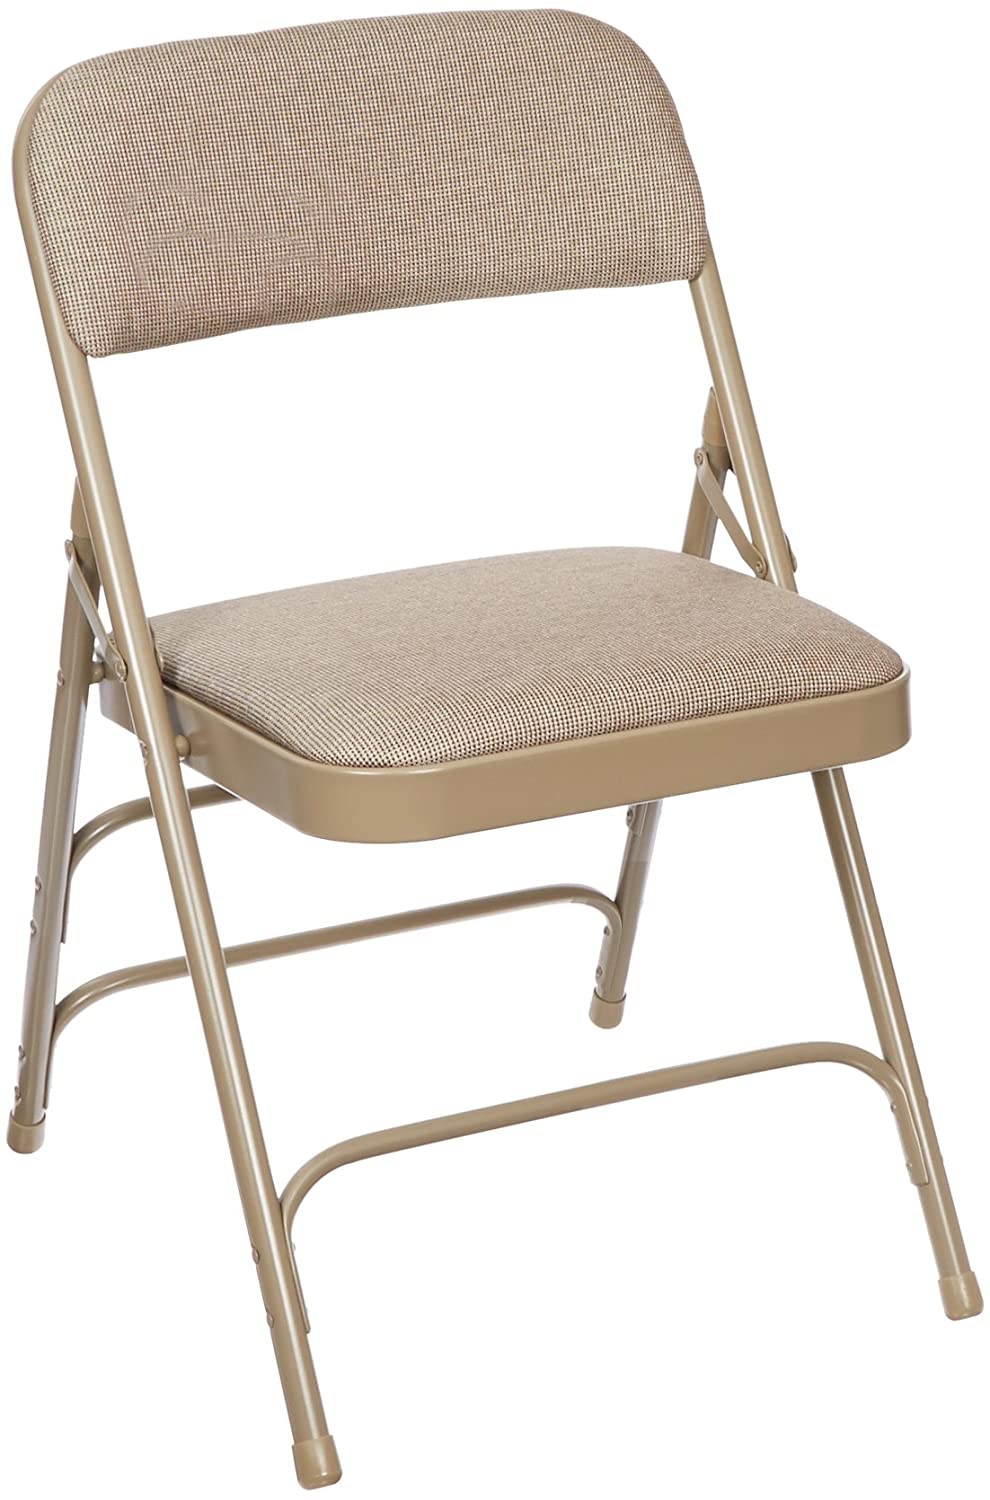 Marvelous Affordable Folding Chairs   480 Lbs